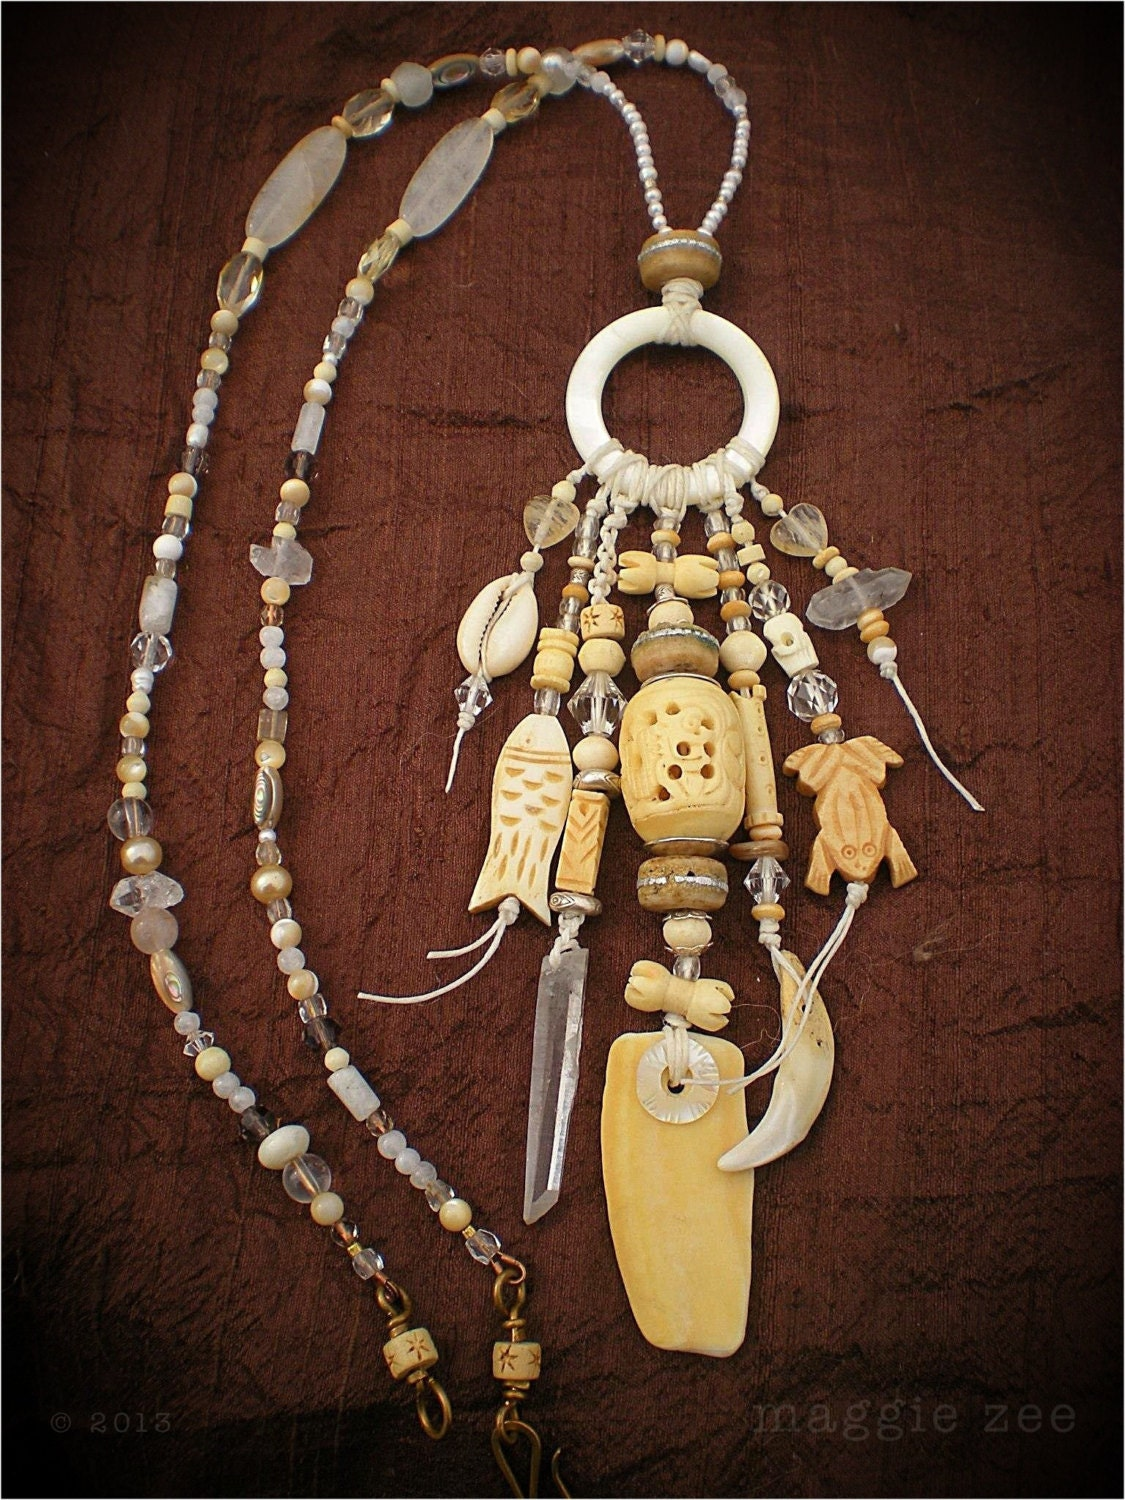 Amulet Jewelry Pendants Sothon: Sea Dreaming Shaman Amulet Necklace By Maggiezees On Etsy